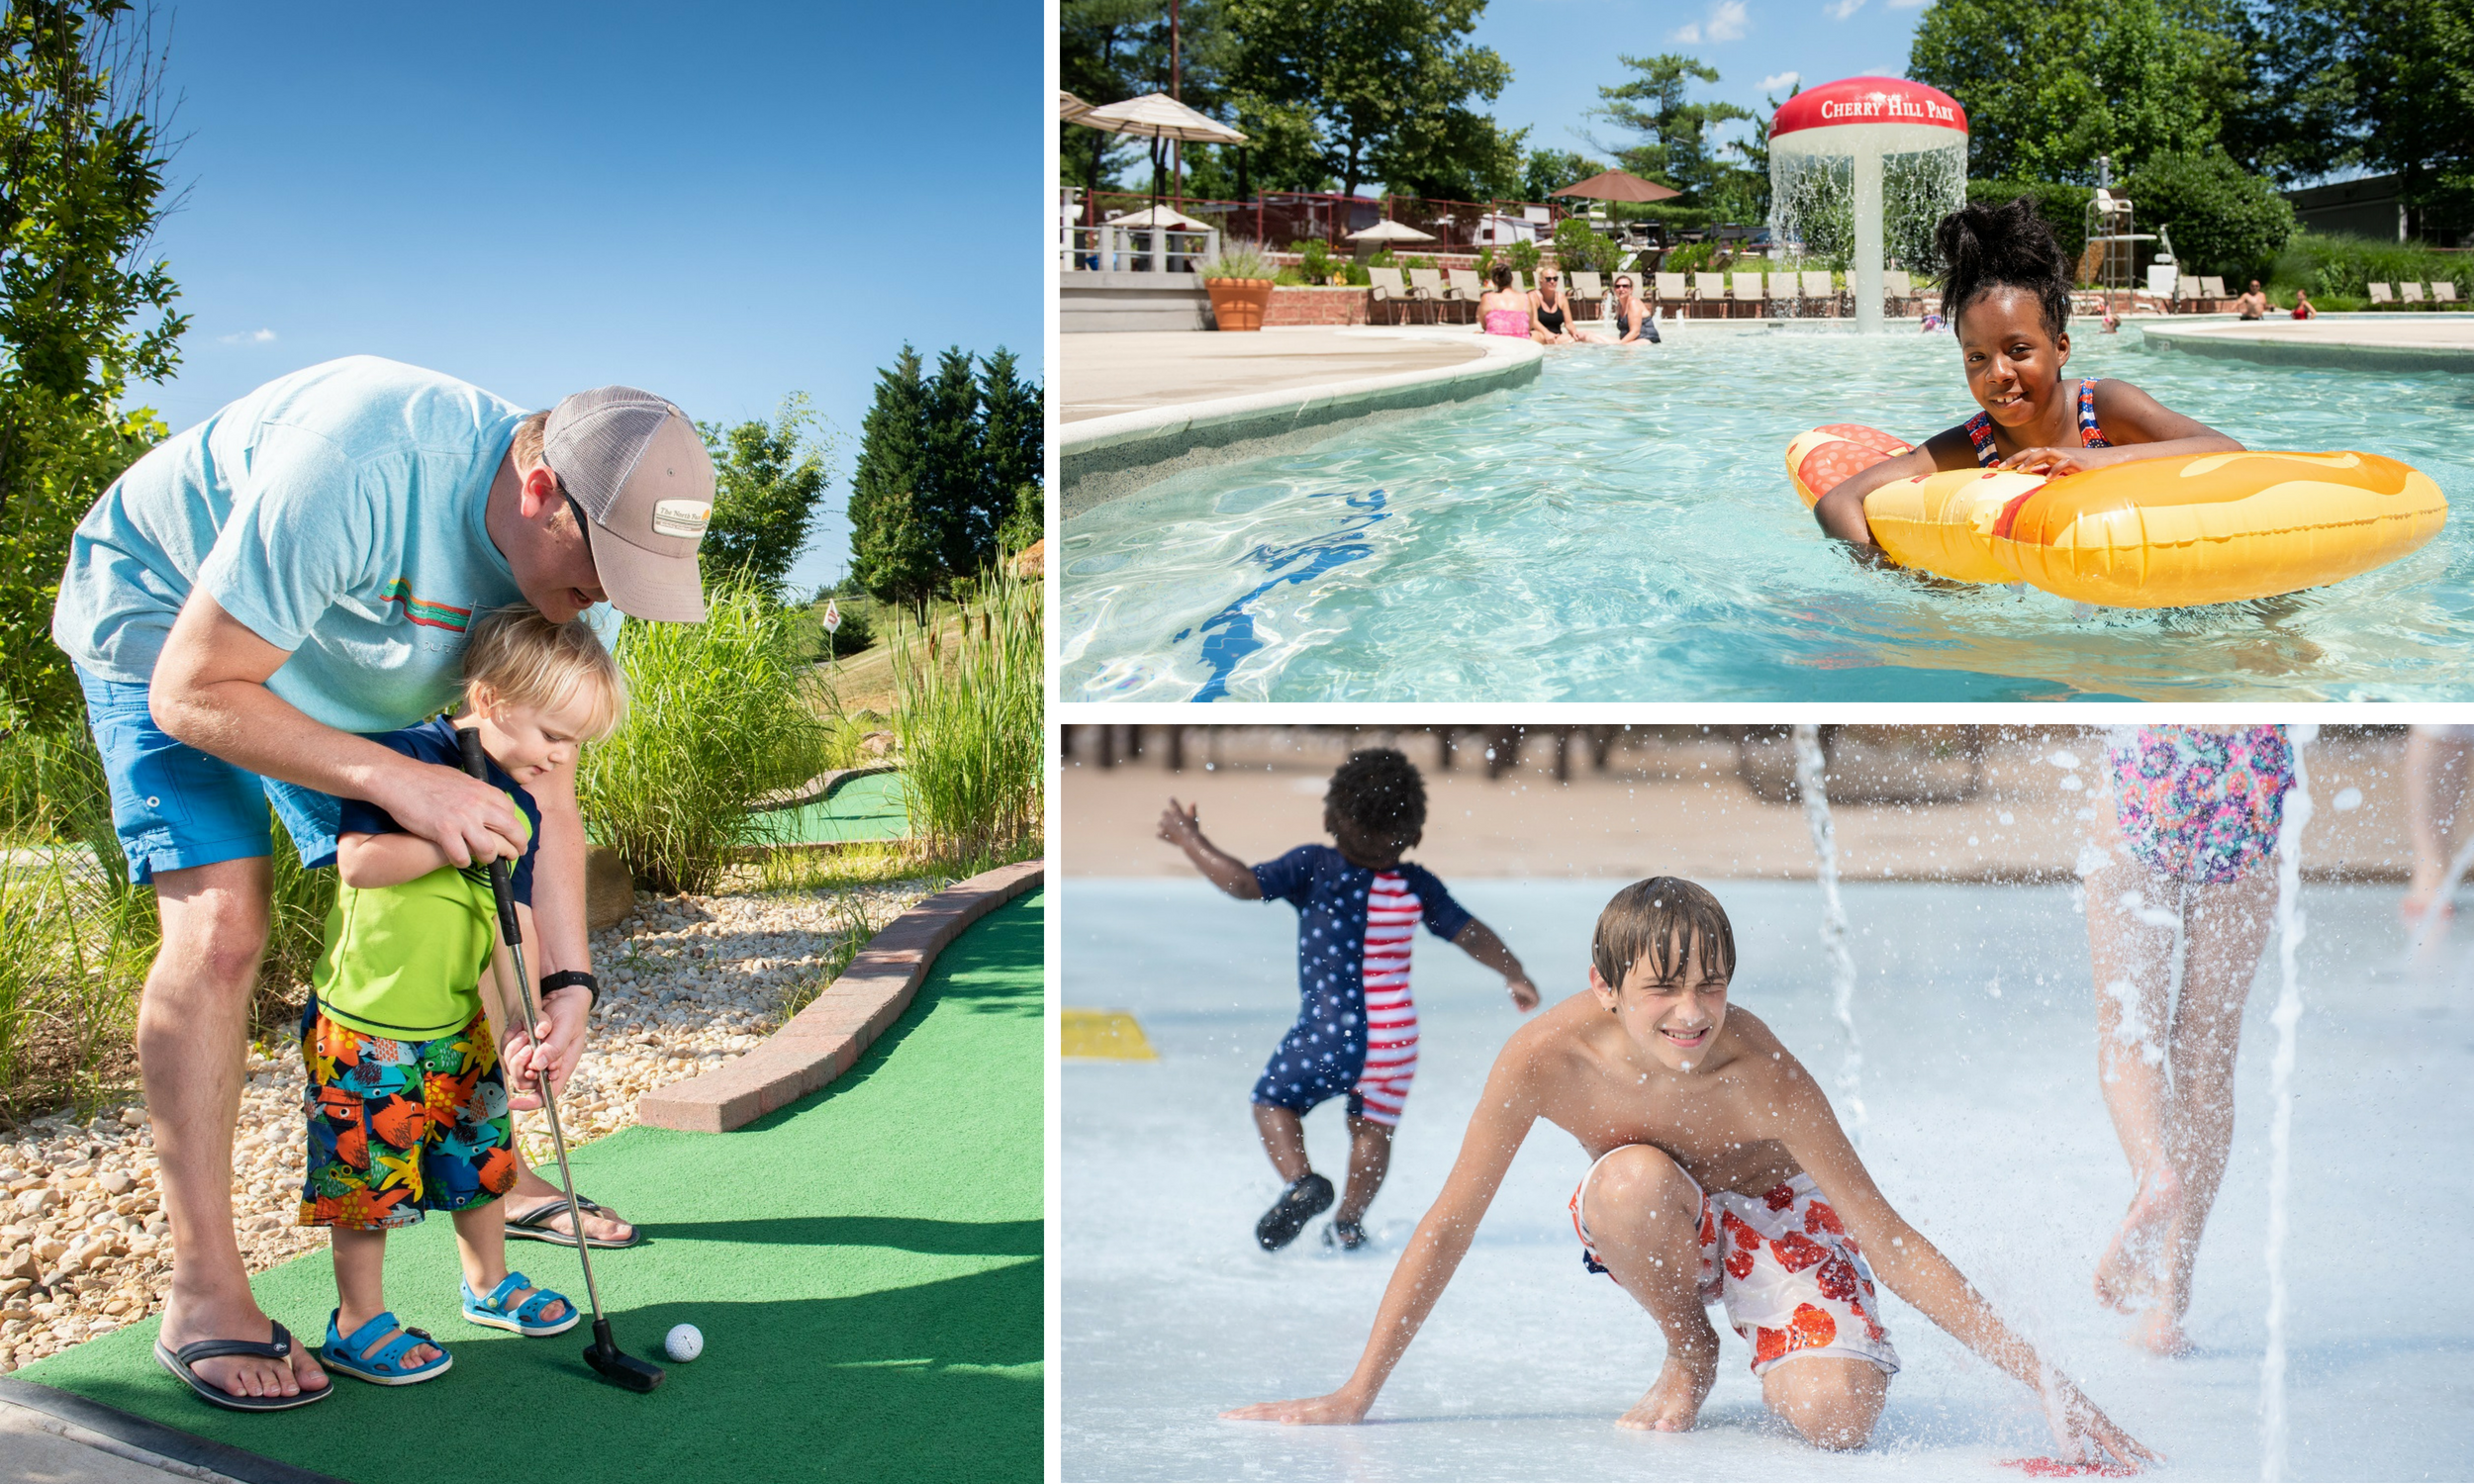 Guests Enjoy Mini Golf, Pools, and the Splash Park at Cherry Hill Park